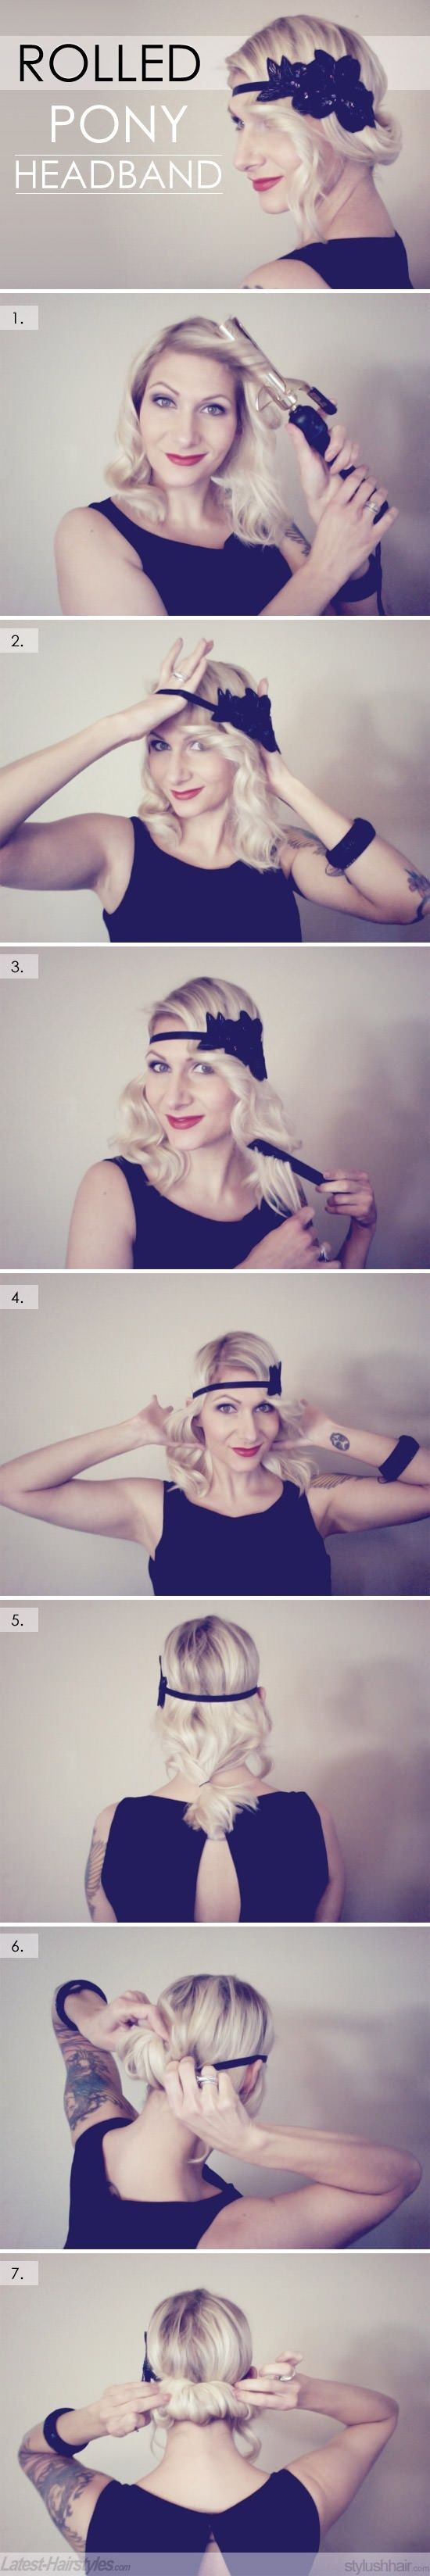 Diy rolled ponytail headband would make a cute every day look with